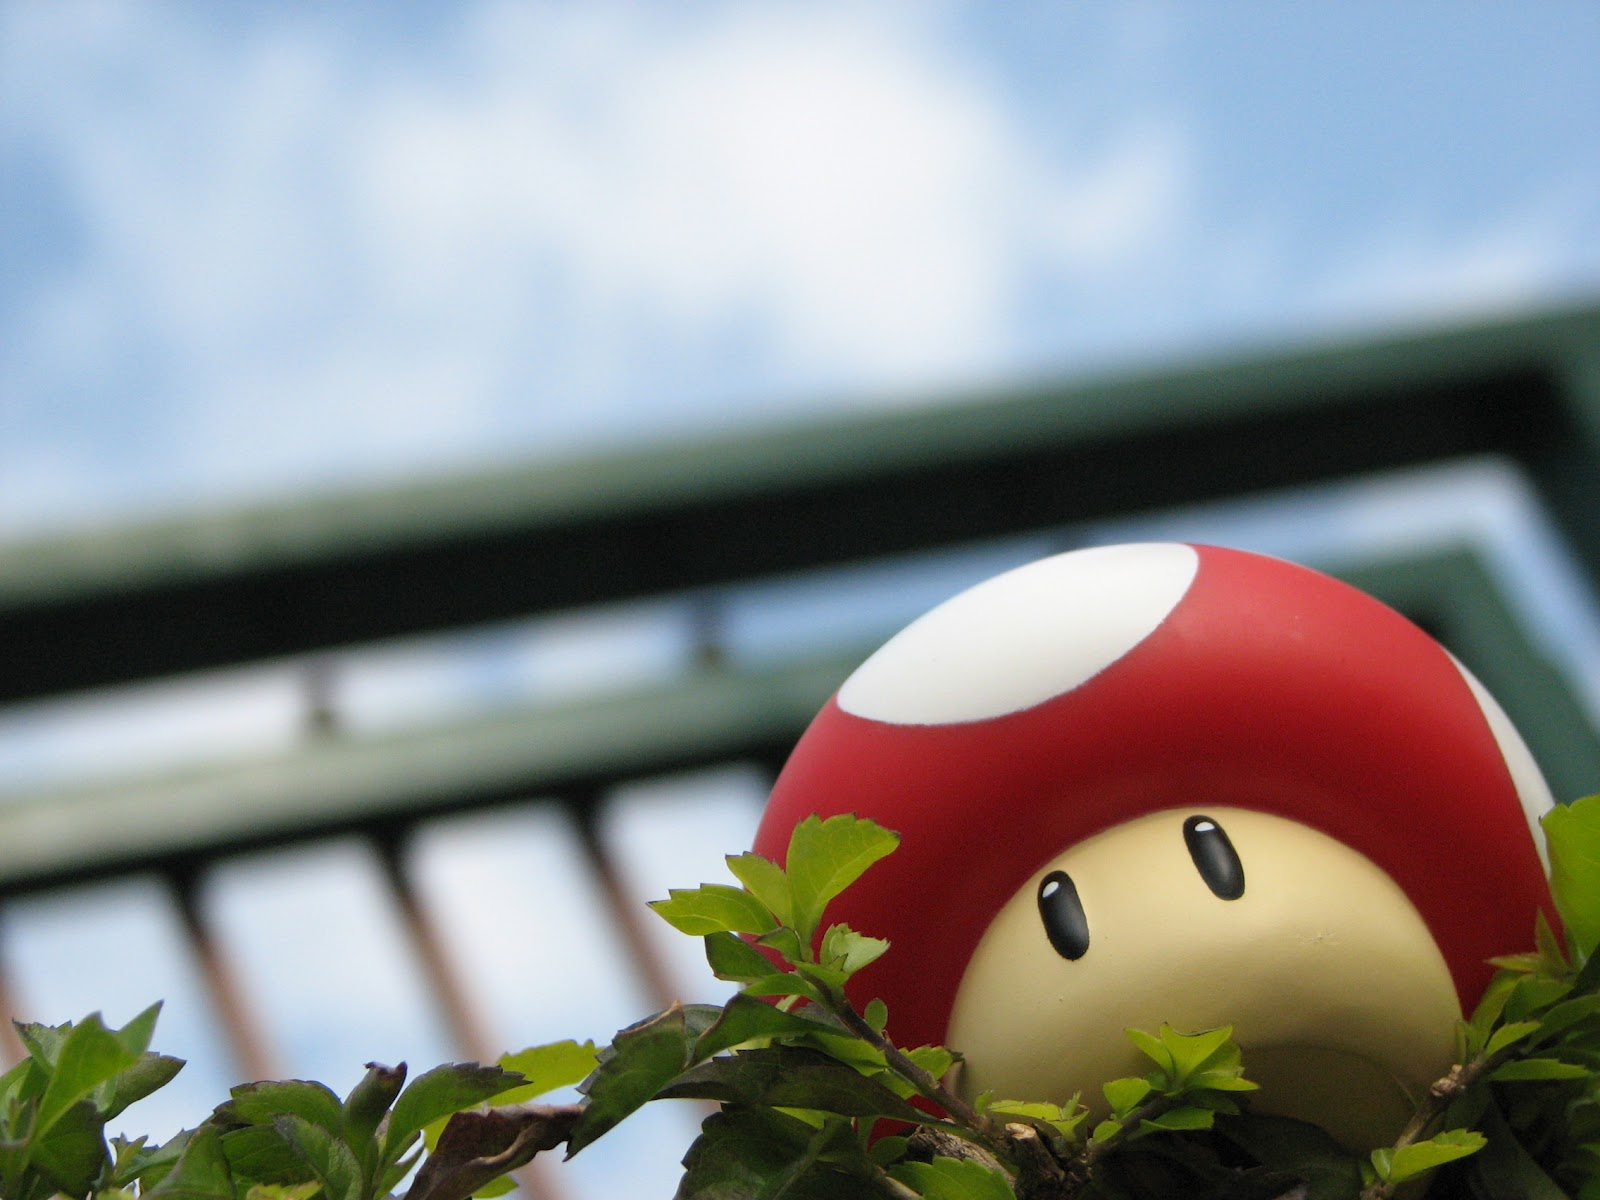 http://4.bp.blogspot.com/-ph87qMxcxmw/T8p3Gca4zEI/AAAAAAAAA4Y/fSesxIjYCG4/s1600/mario+mushroom+3d+red+wallpaper+background.jpg